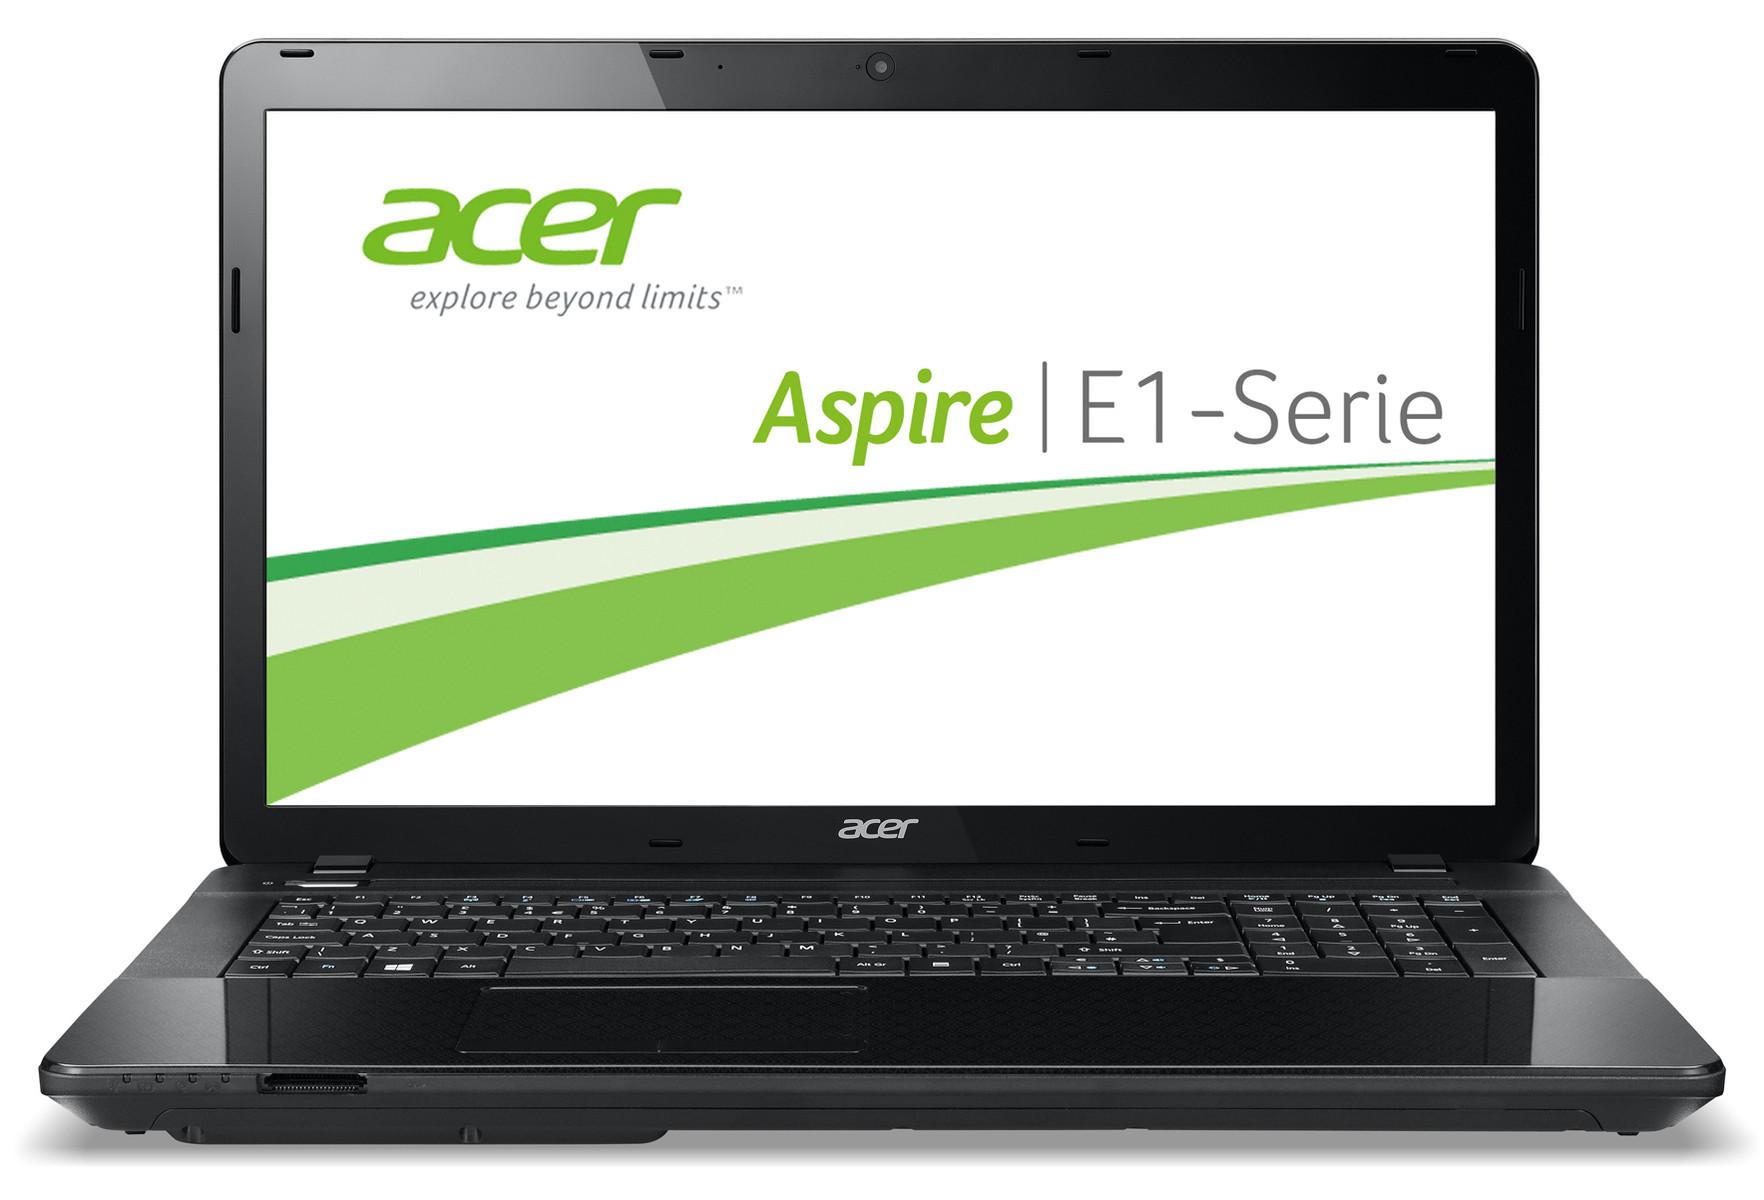 Acer Aspire E1-731G NVIDIA Graphics 64x